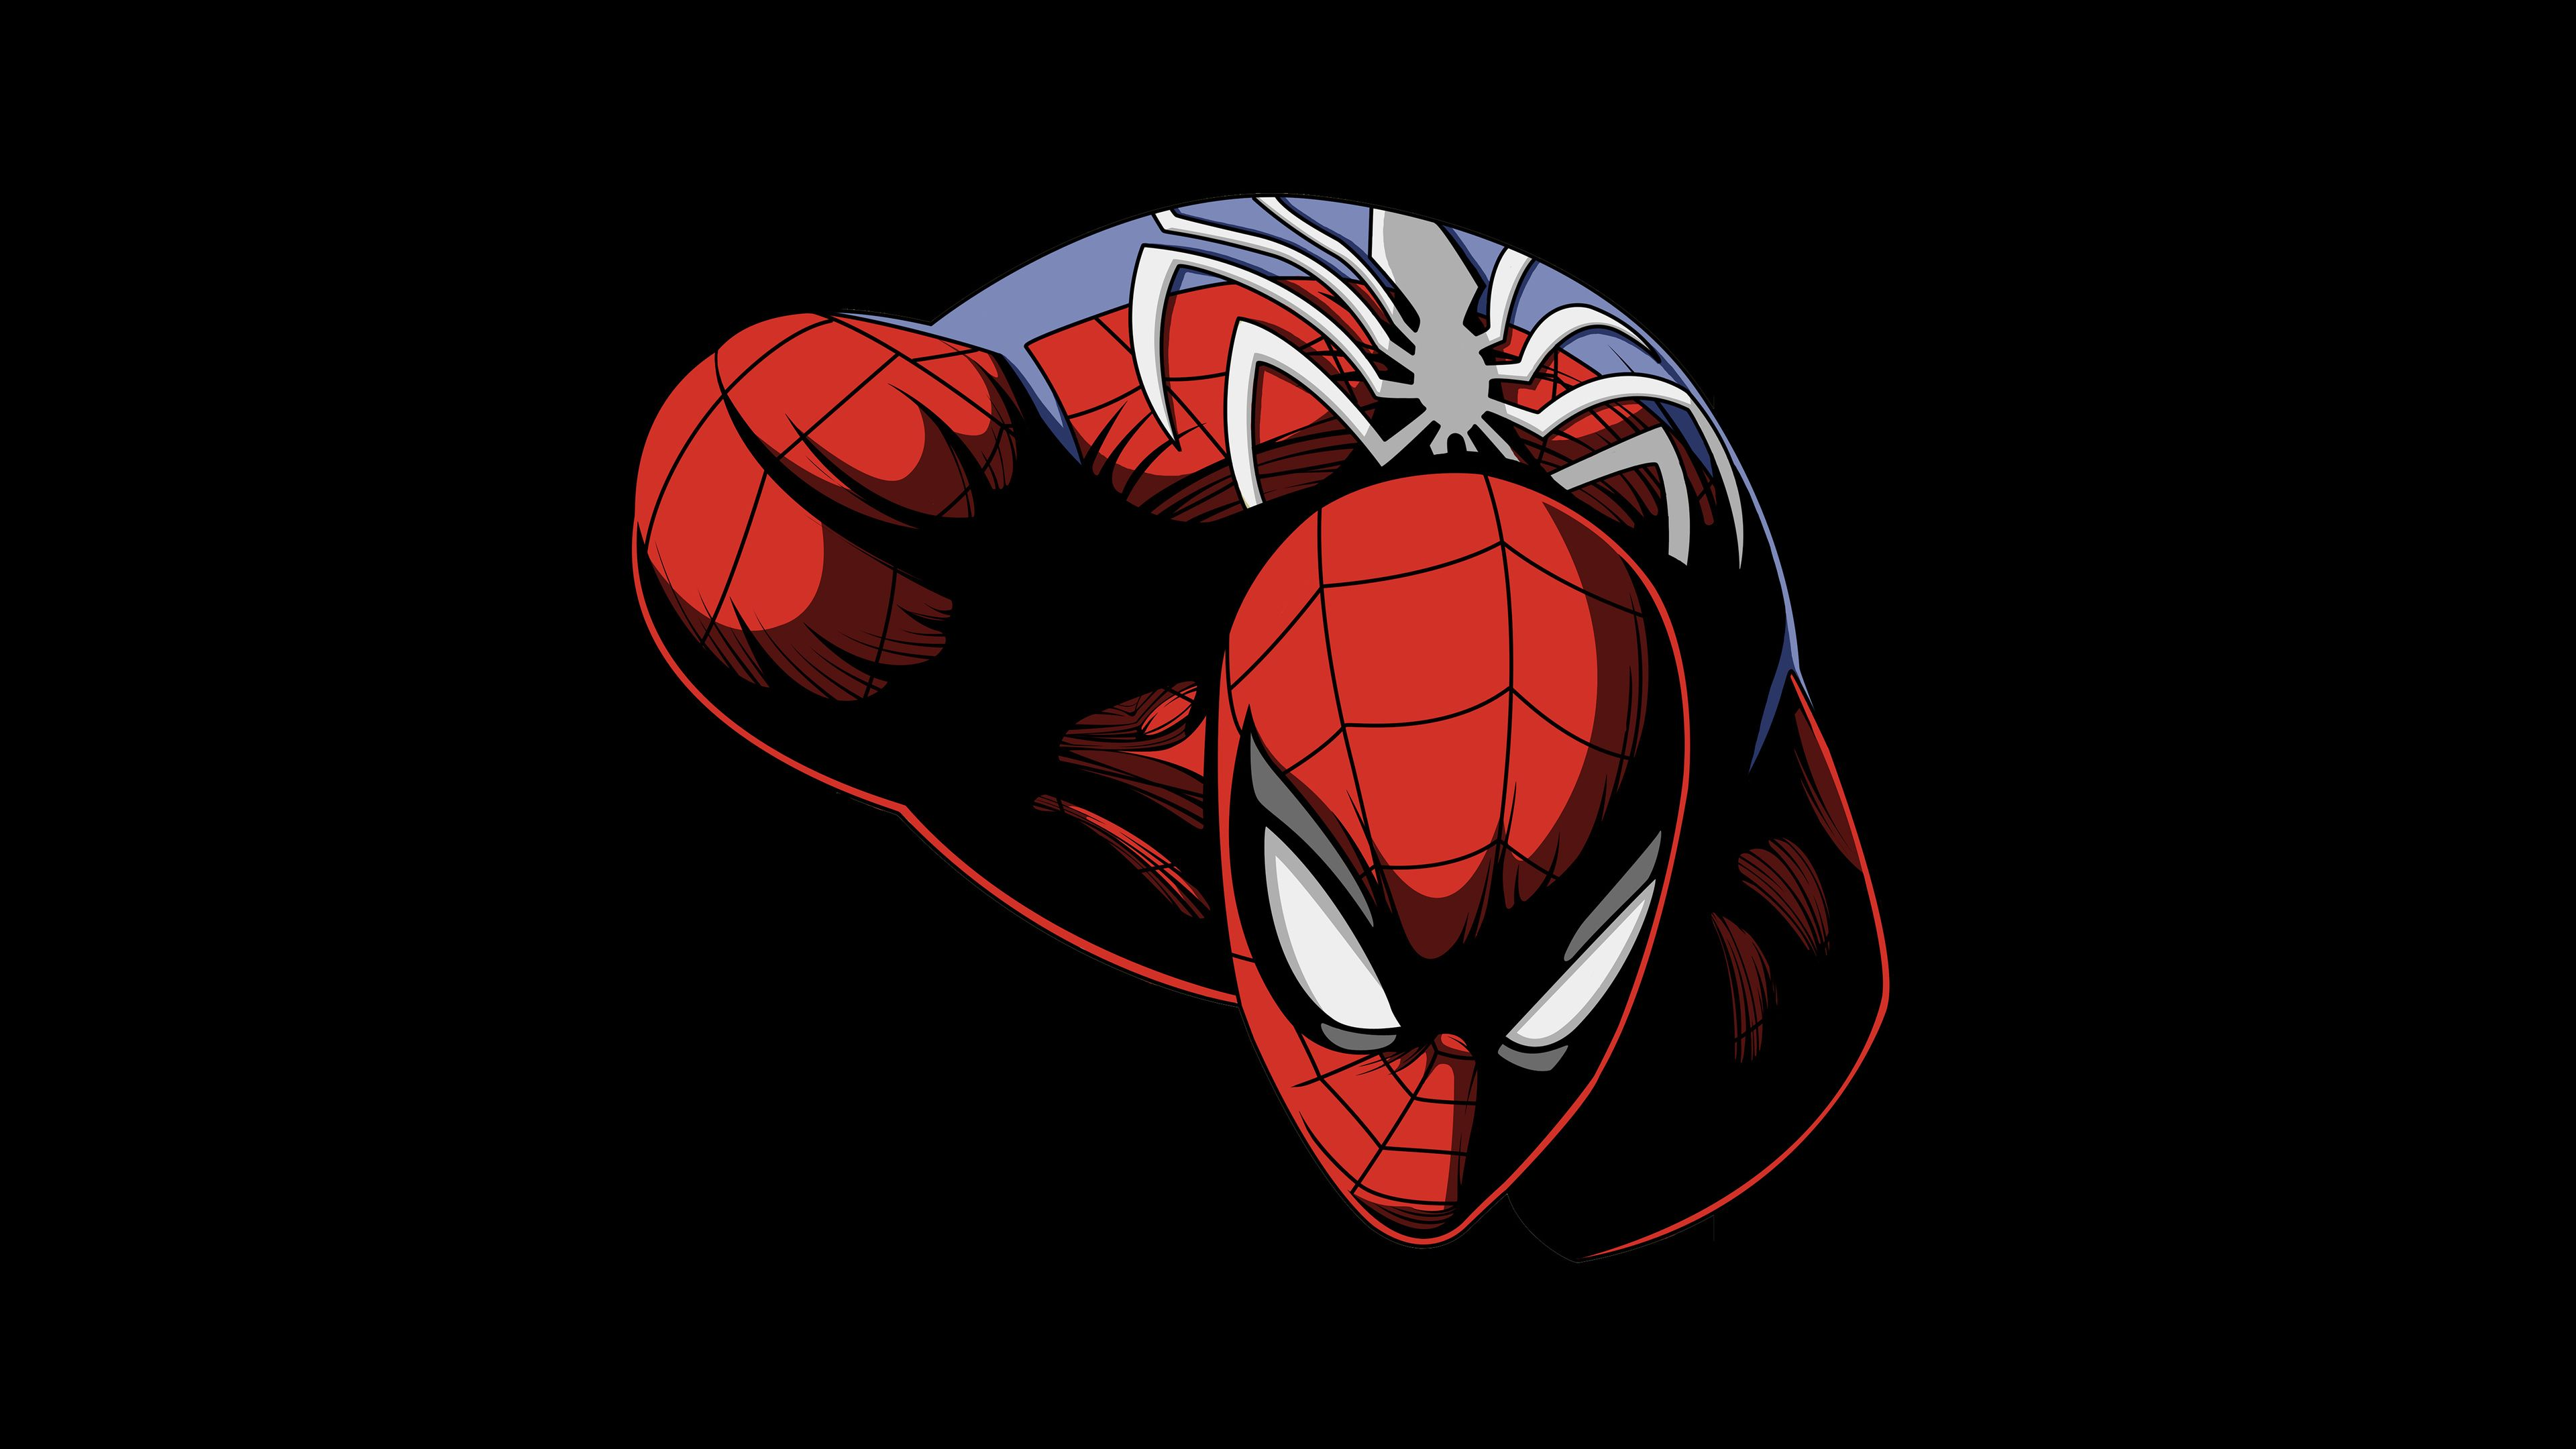 Spiderman Dark Oled 5k Superheroes Wallpapers Spiderman Wallpapers Red Wallpapers Oled Wallpapers Hd Wallpapers Dark W Spiderman Spiderman Comic Superhero